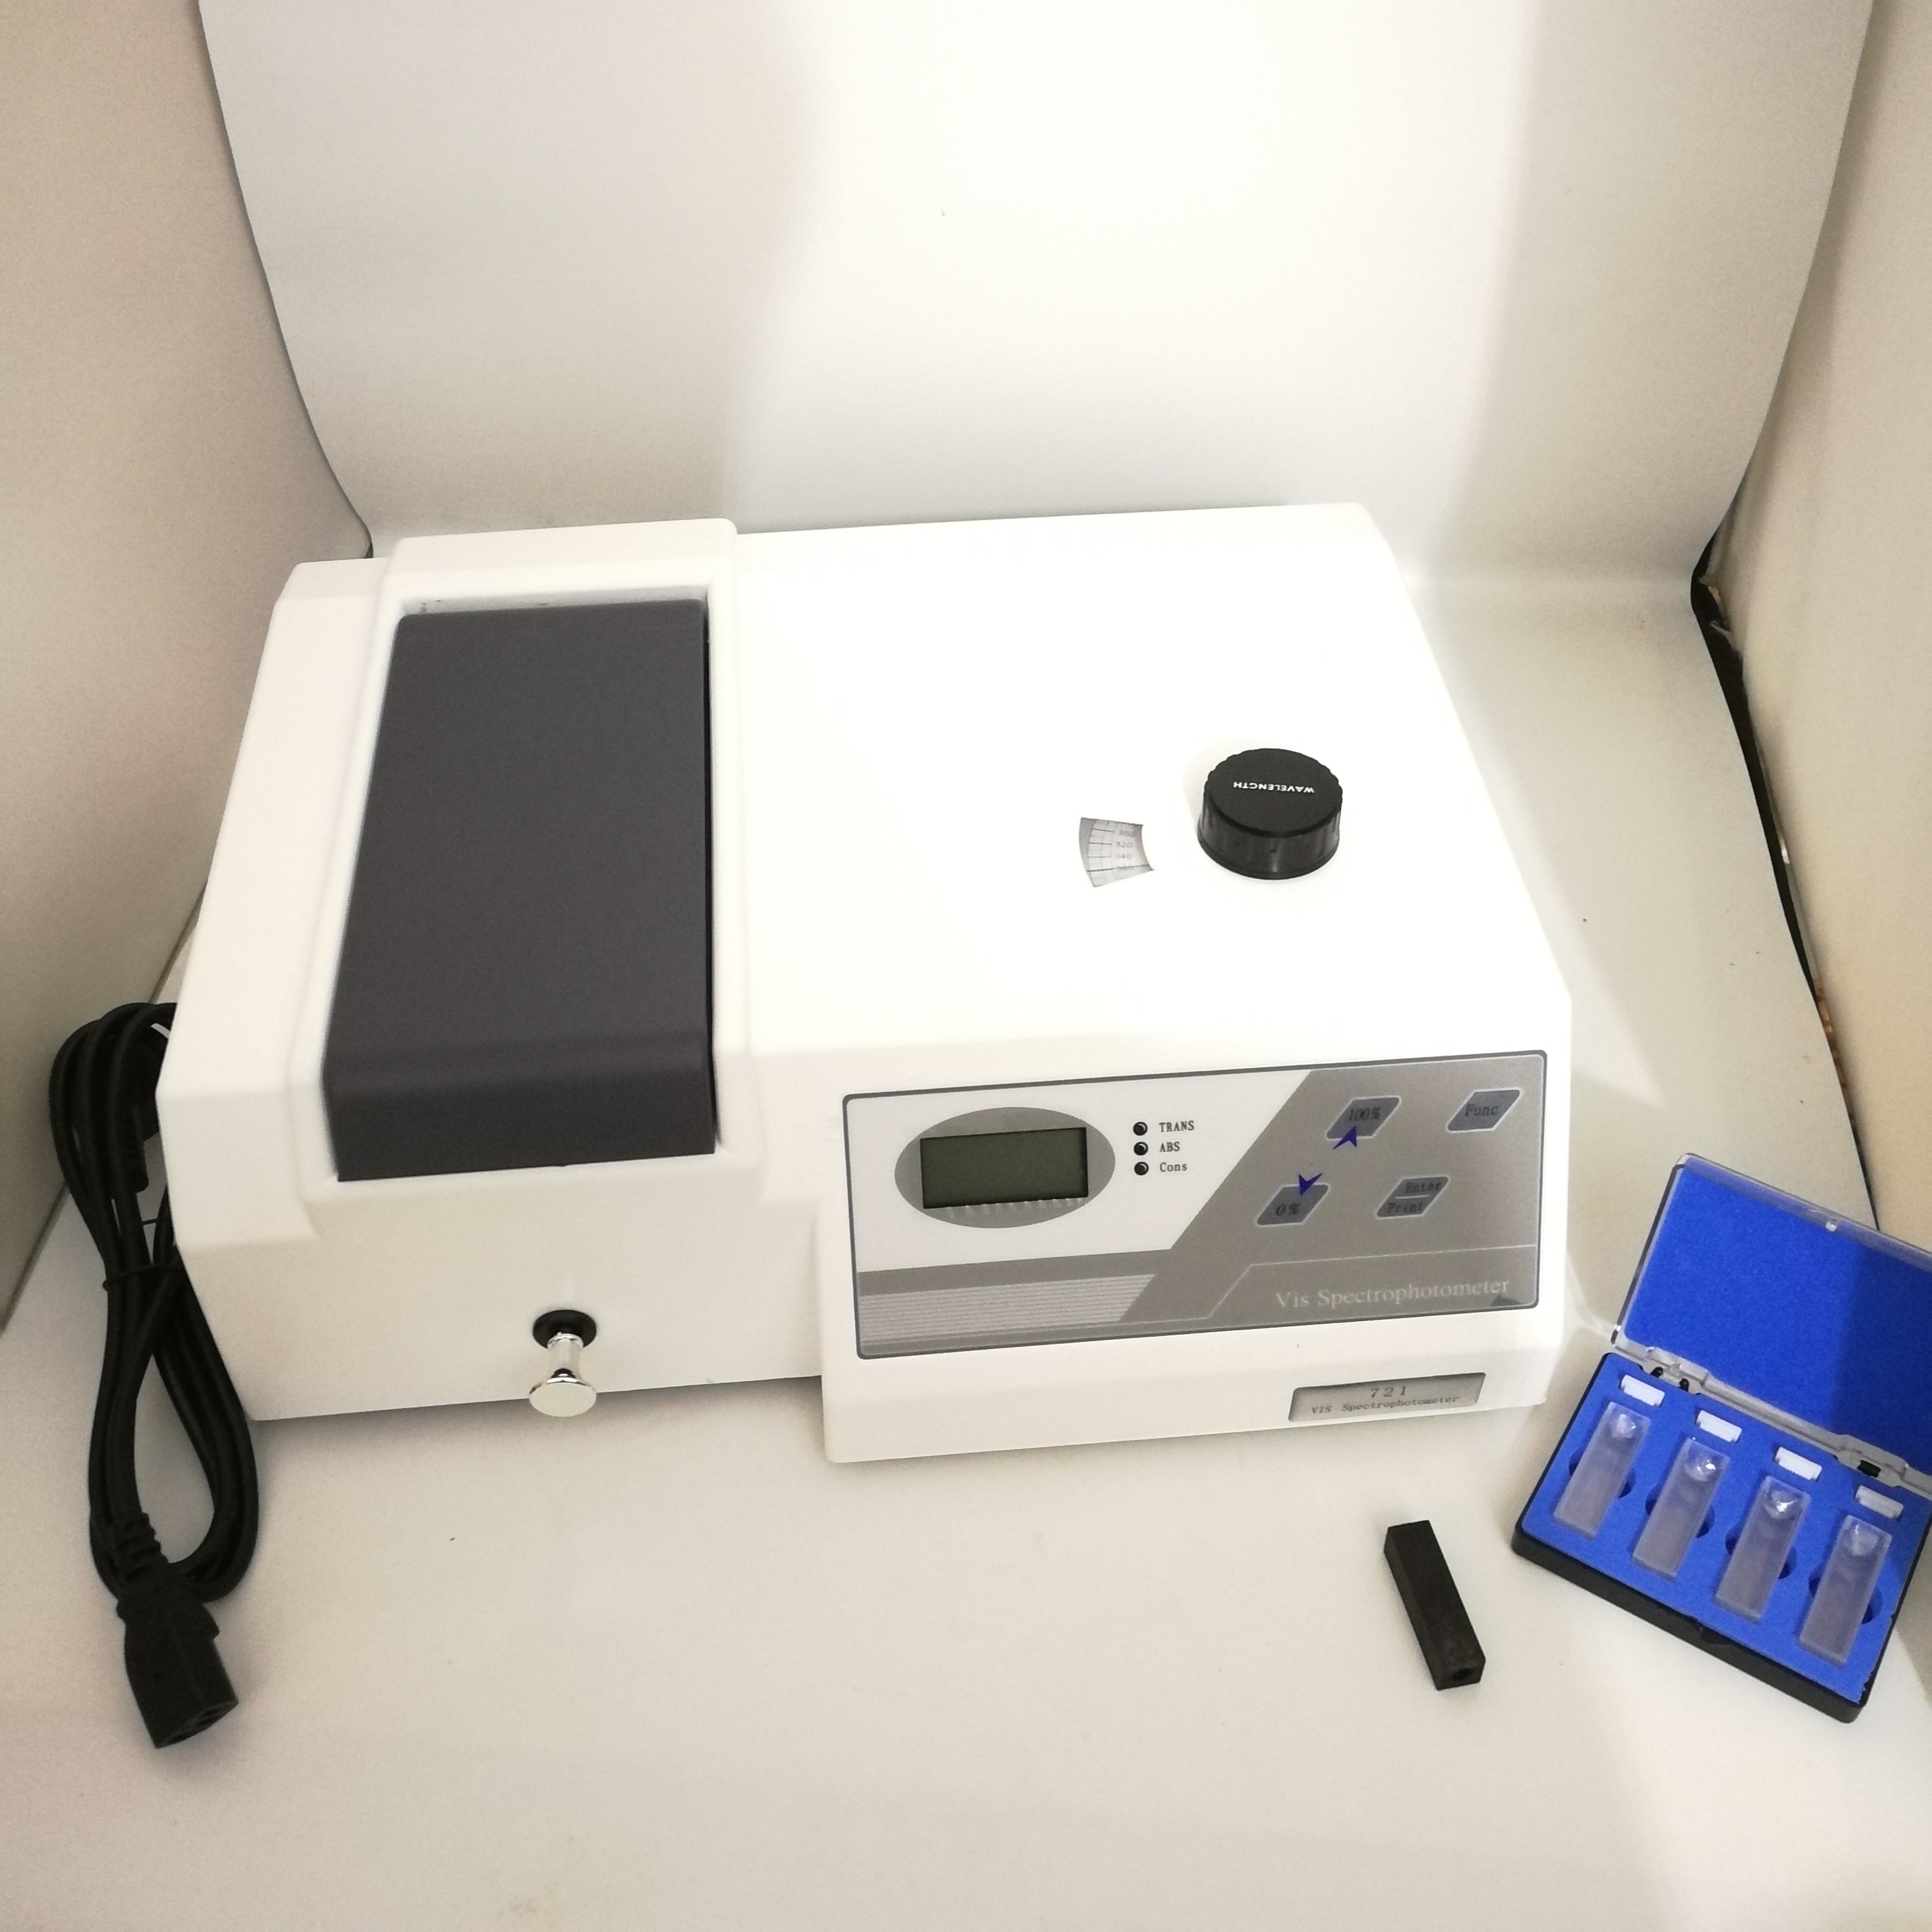 721 Lab VIS Spectrophotometer Equipment 325-1050nm Spectral Bandwidth 4nm Distance New